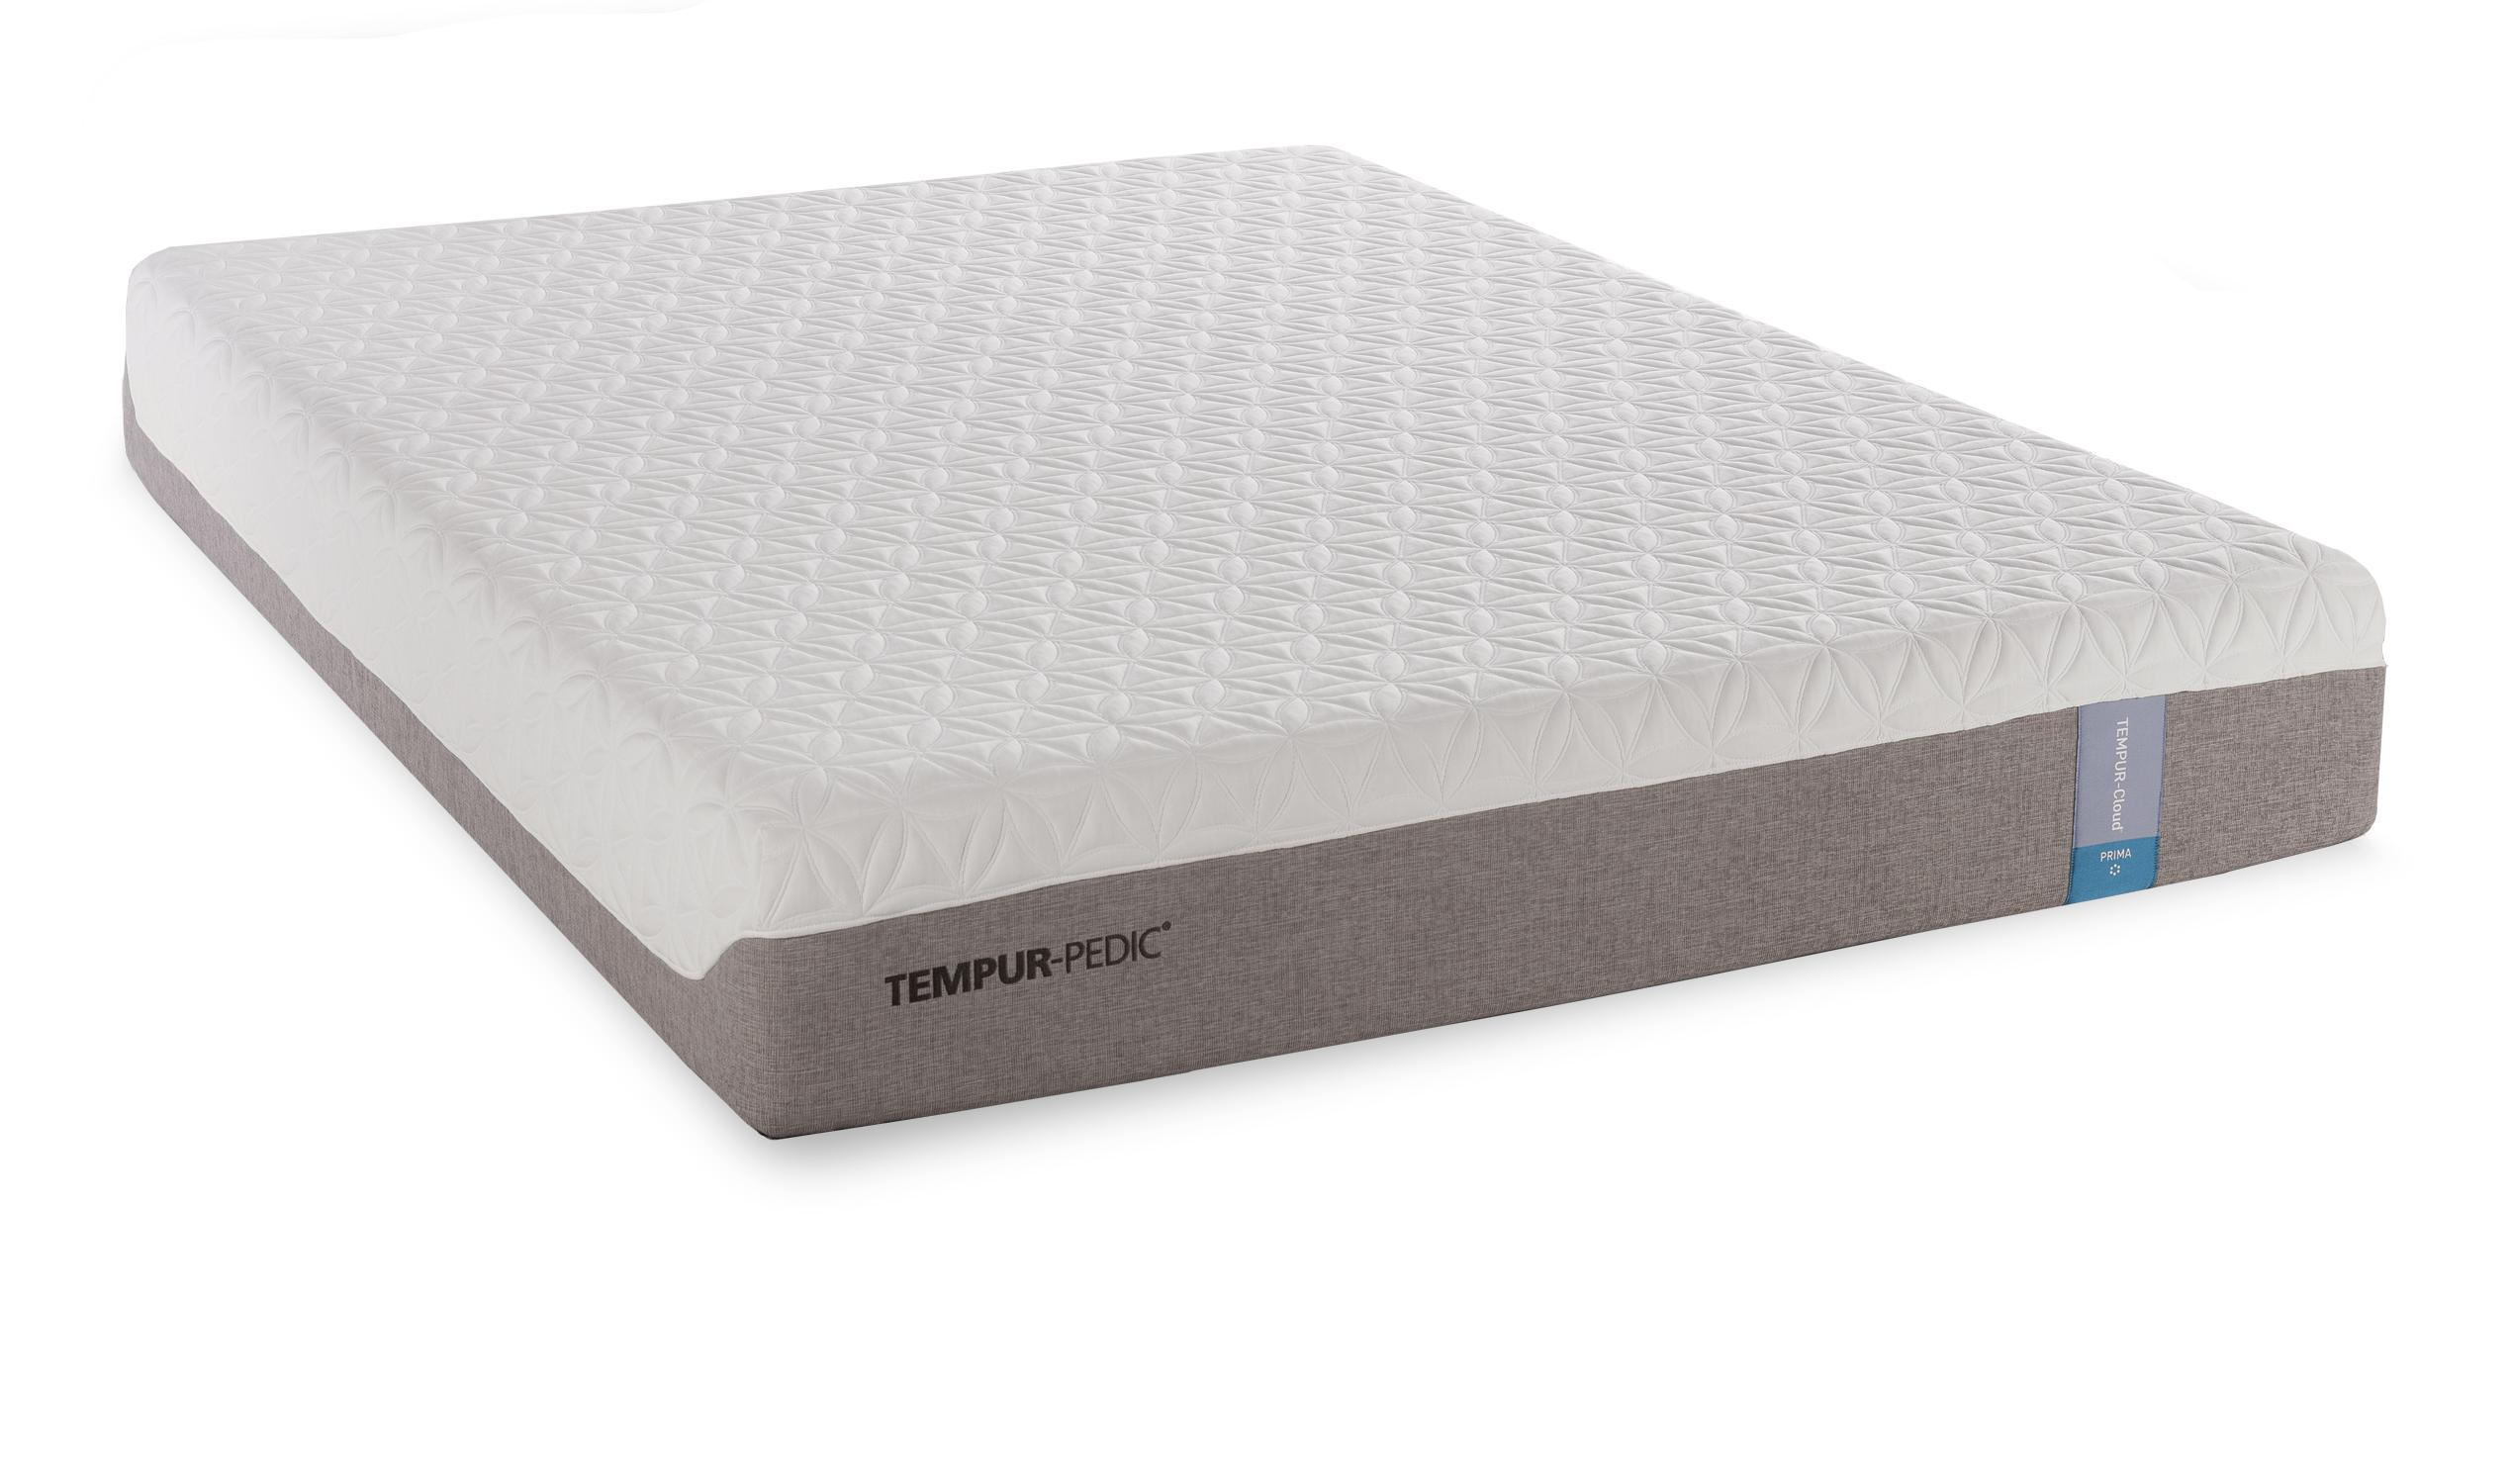 Tempur-Pedic® TEMPUR-Cloud Prima Queen Medium-Soft Mattress - Item Number: 10237150